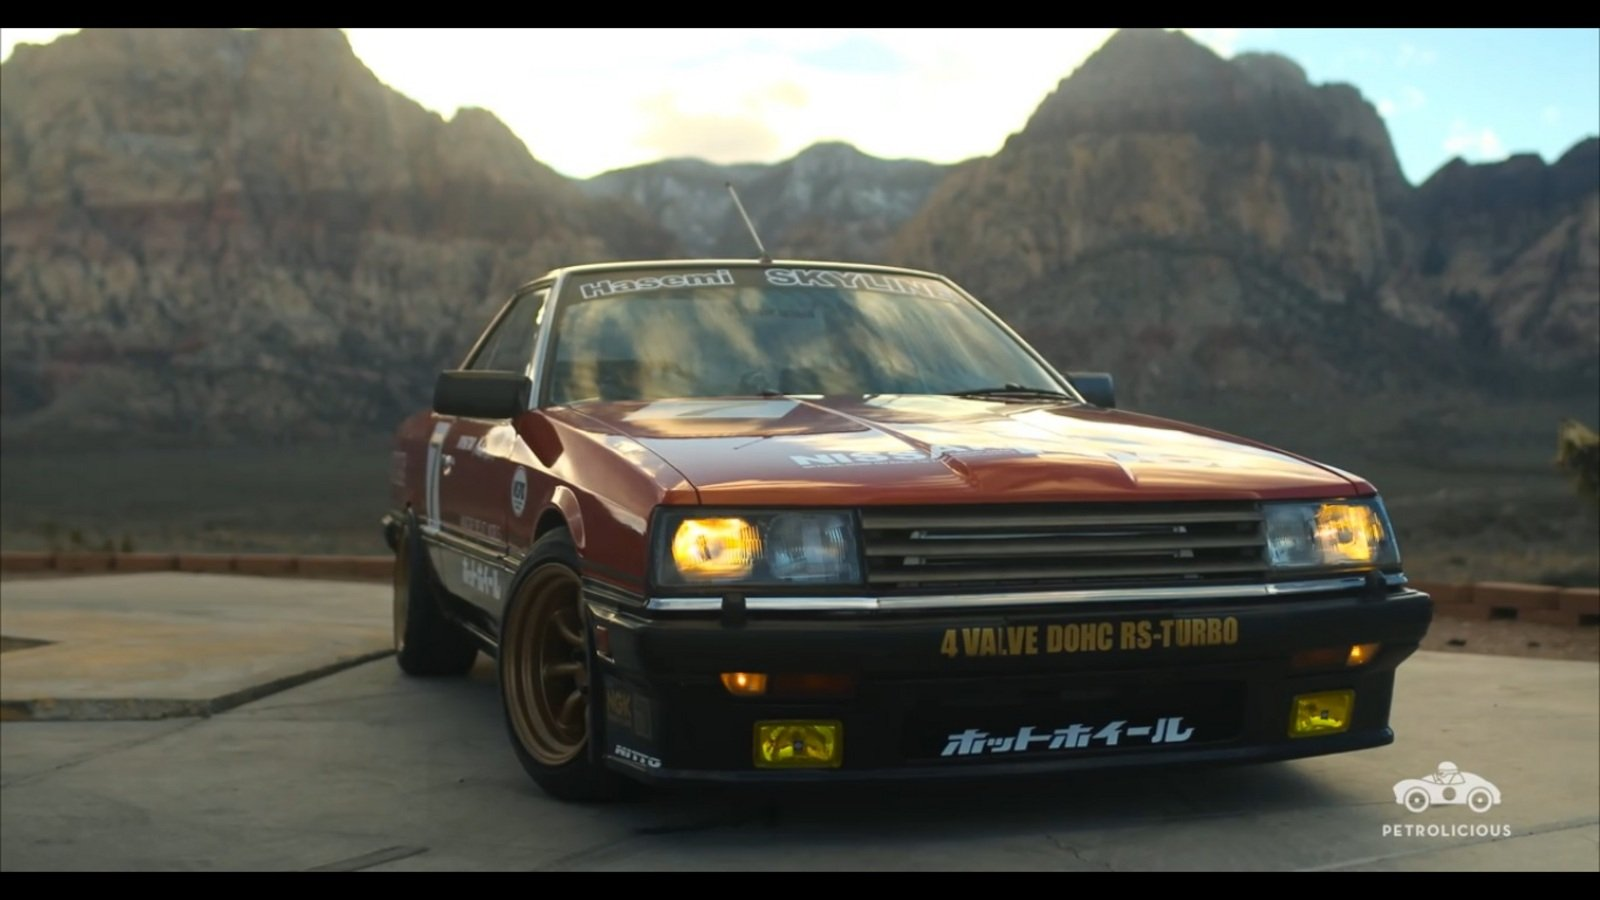 Container Garage Petrolicious Takes A Look At A Nissan Skyline Dr30: Video